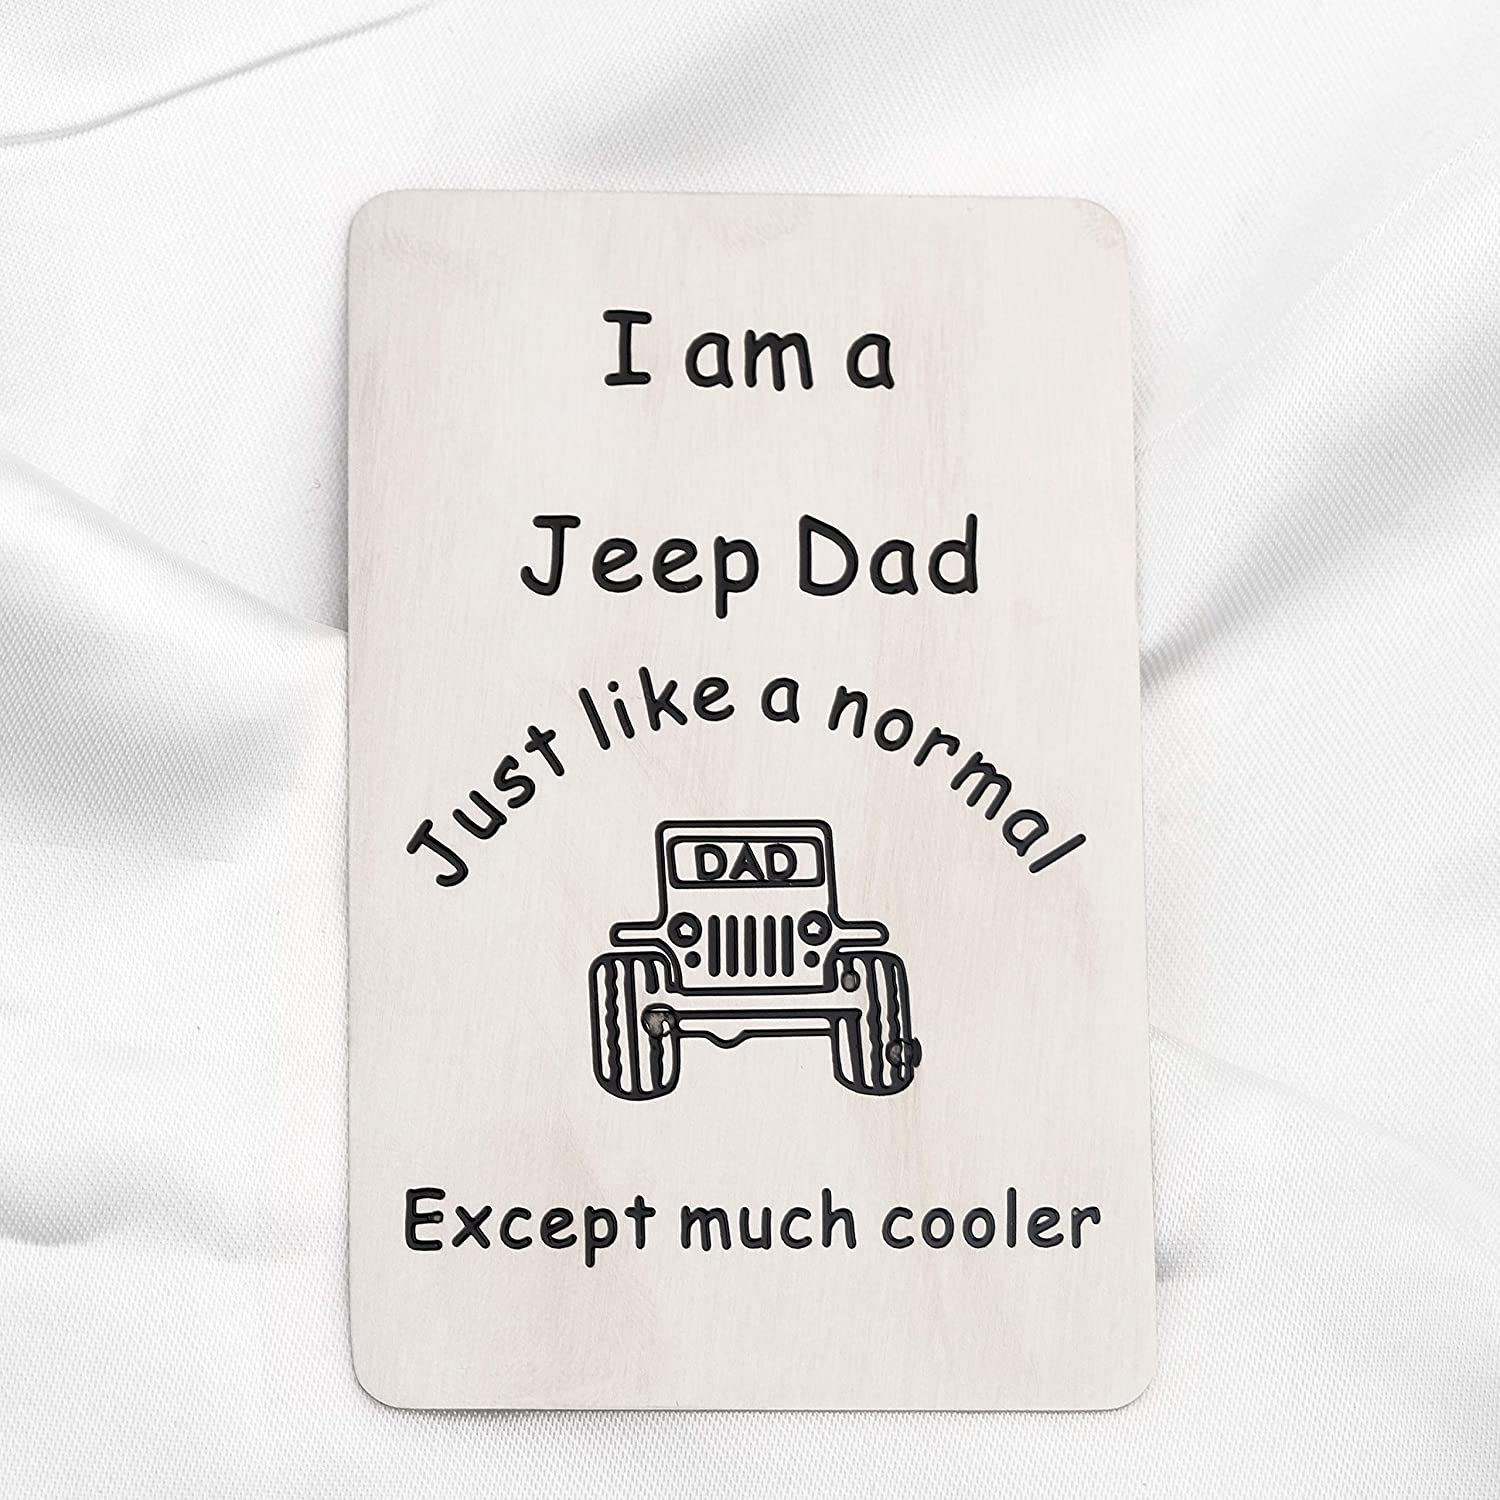 FUSTMW Jeep Mom Dad Keychain Jeep Gifts for Mom Jeep Dad Gifts Jeep Keychanin Jeep Lover Gift Jeep Wrangler Gift I am a Jeep Mom//Dad Like an Normal Mom//Dad Except Much Cooler